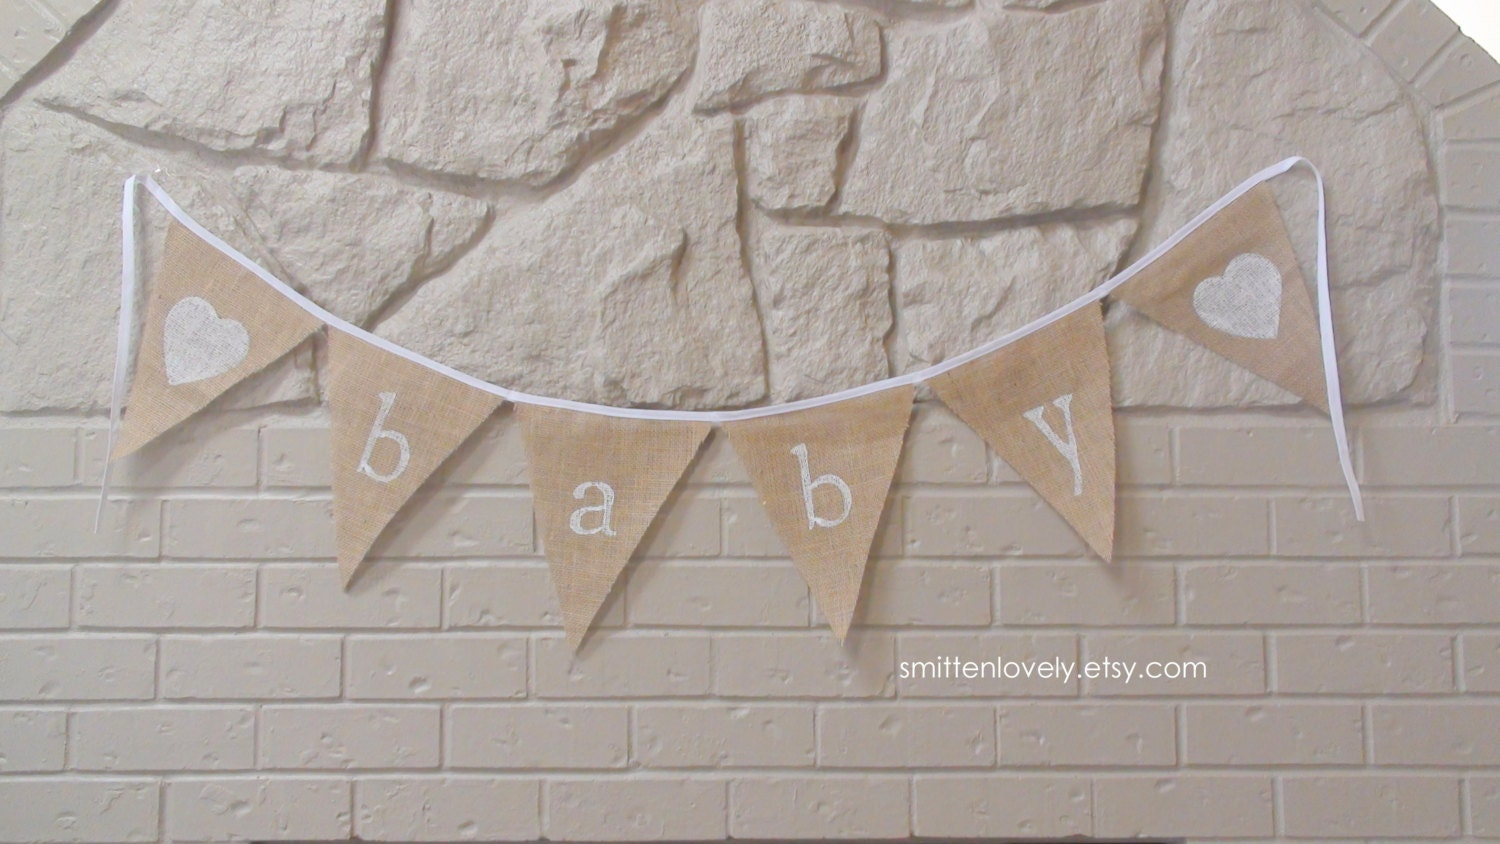 new baby burlap banner baby shower decorations by smittenlovely